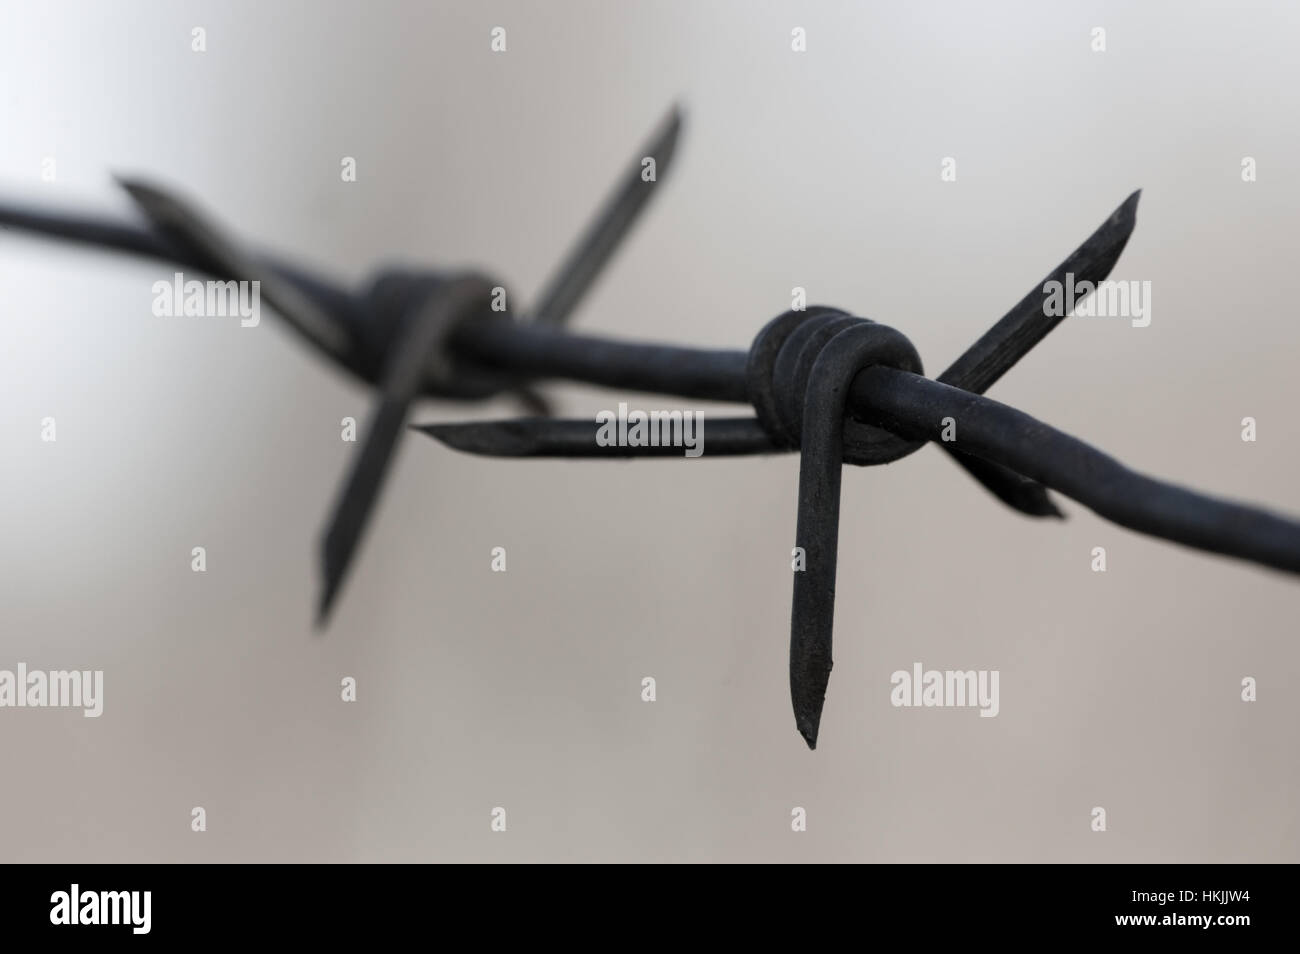 Rusting Barbed Wire Stock Photos & Rusting Barbed Wire Stock Images ...